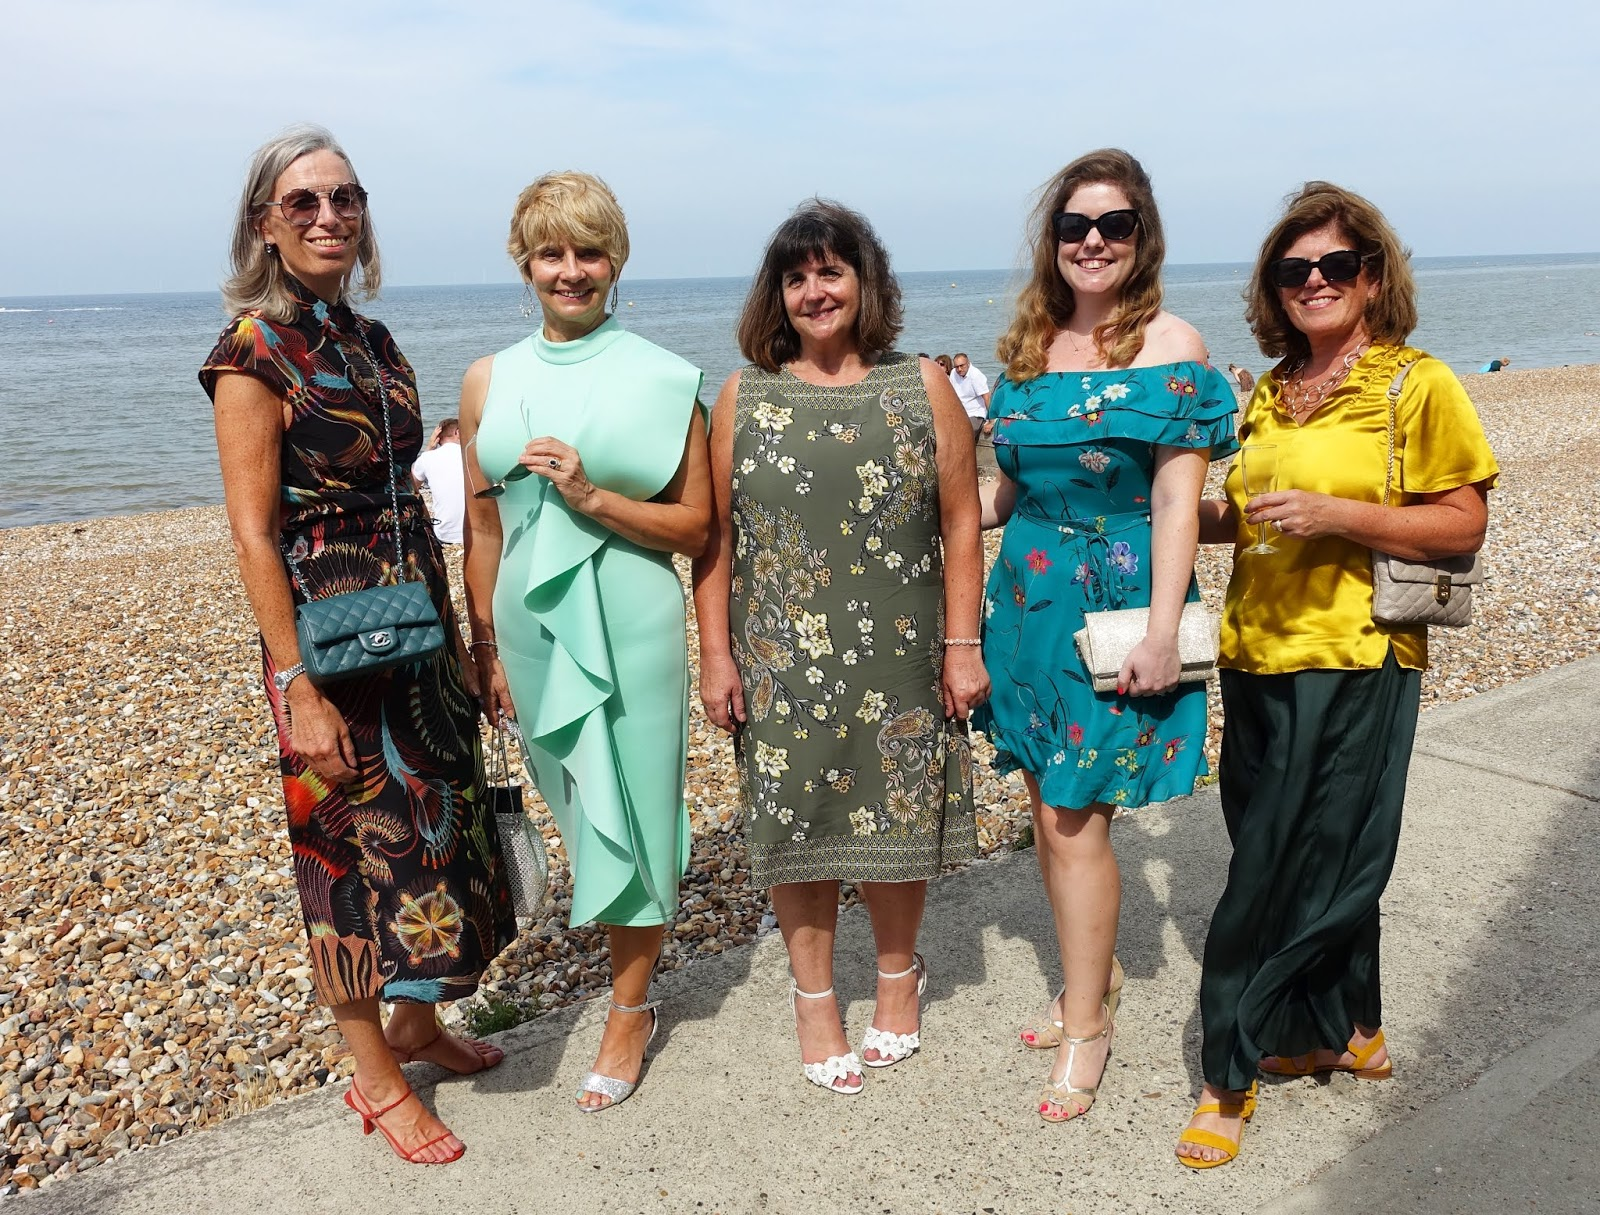 A group of female wedding guests at a Whitstable beach wedding in the August sunshine